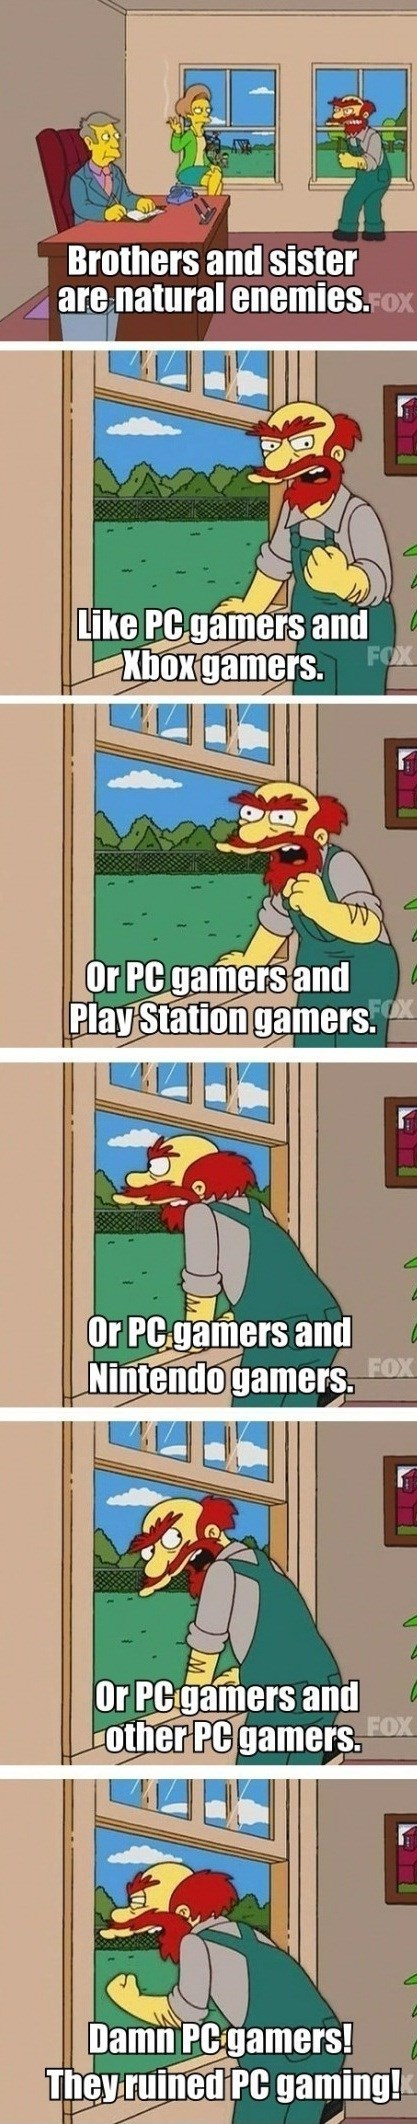 gaming gamers groundskeeper willie the simpsons PC MASTER RACE - 8437566976